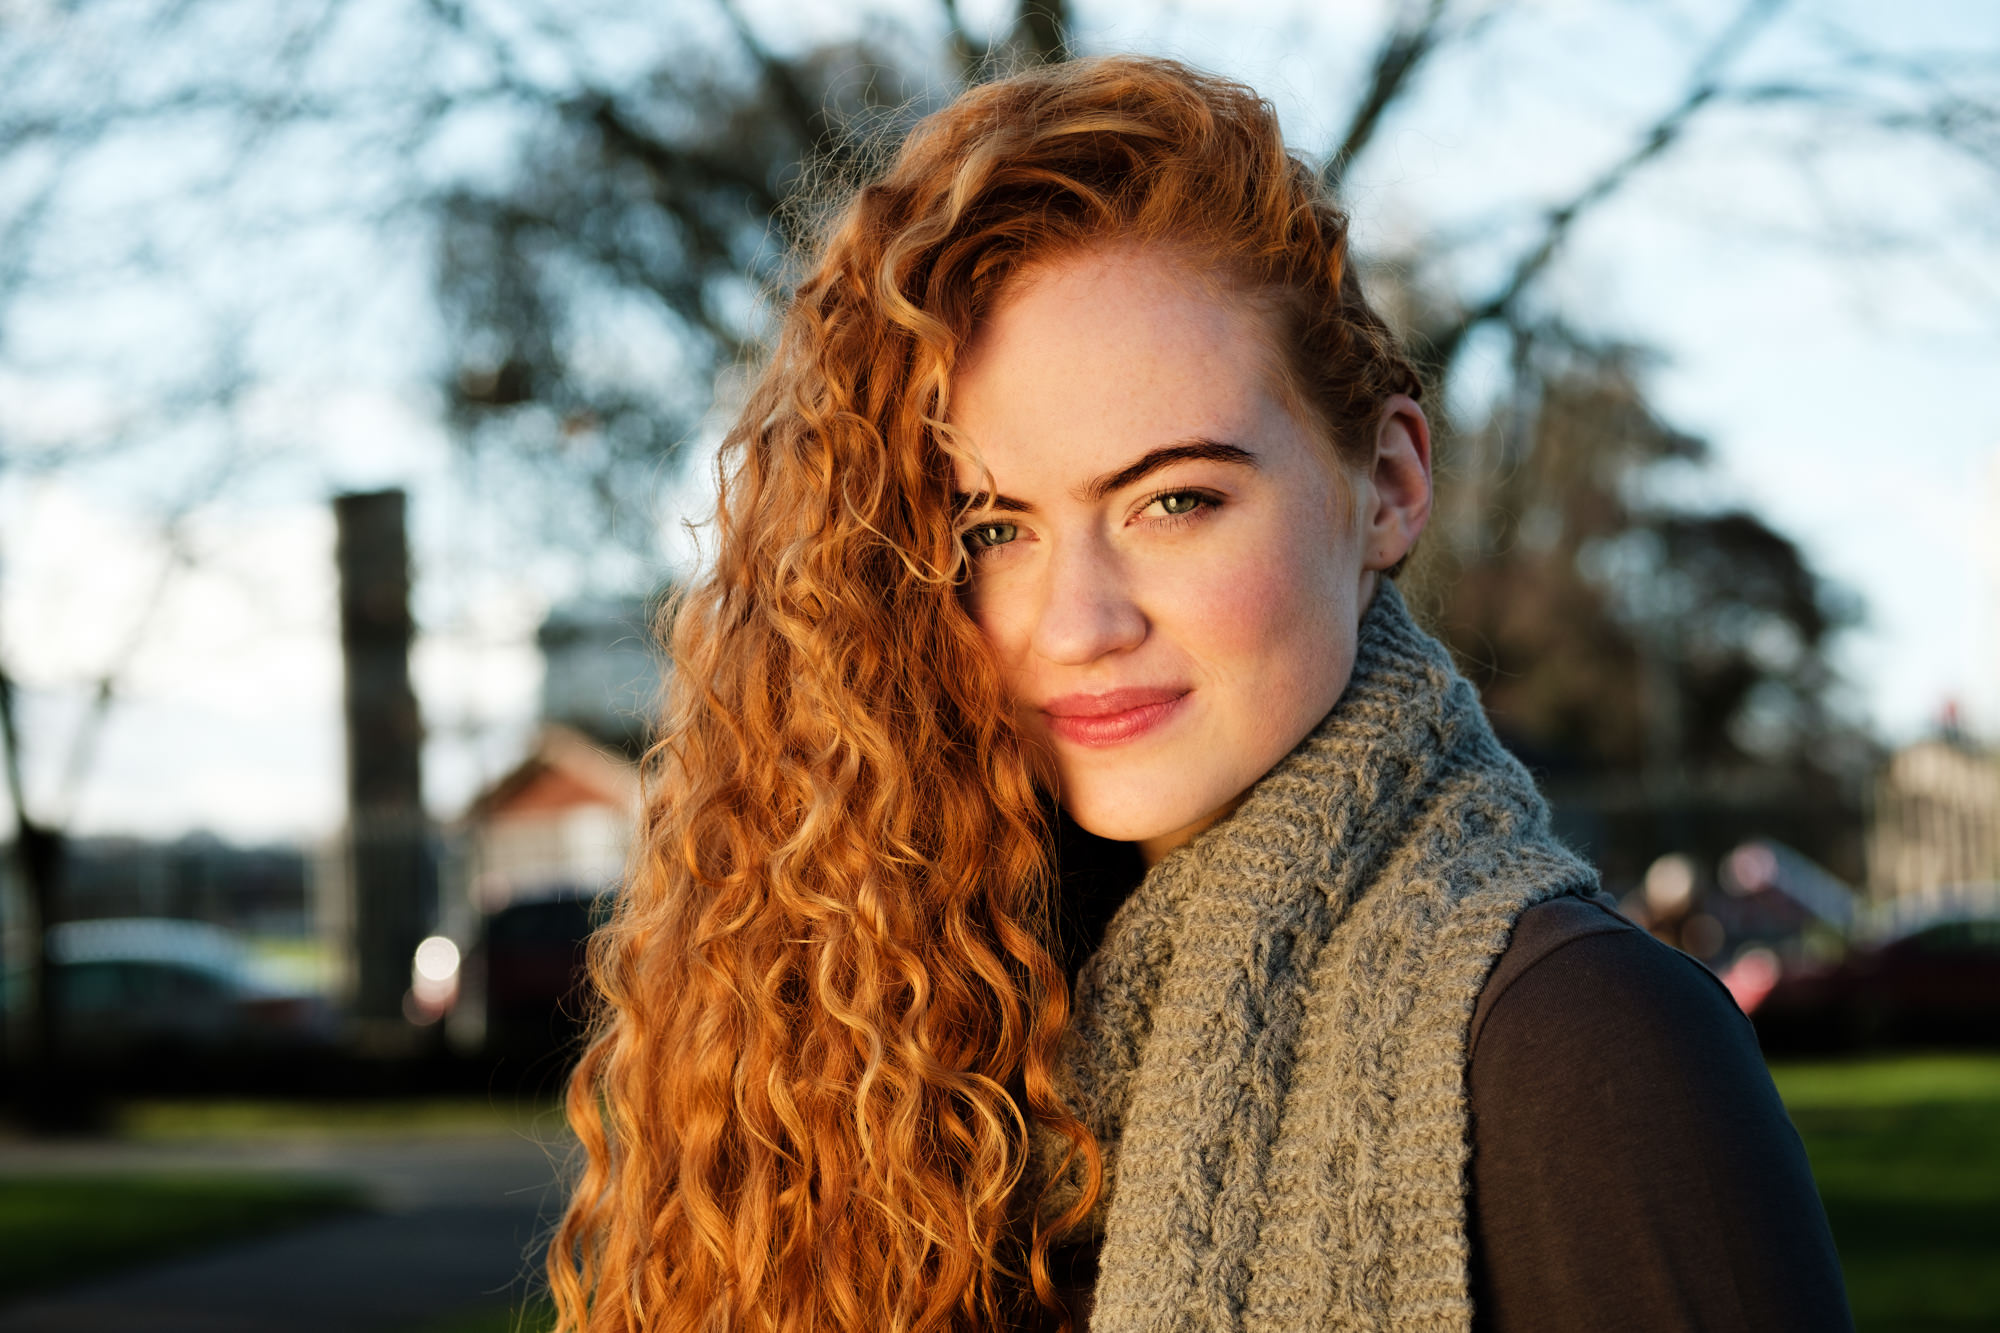 Irish model with long red hair wearing 100% Irish wool scarf by Yarn Vibes in Ireland